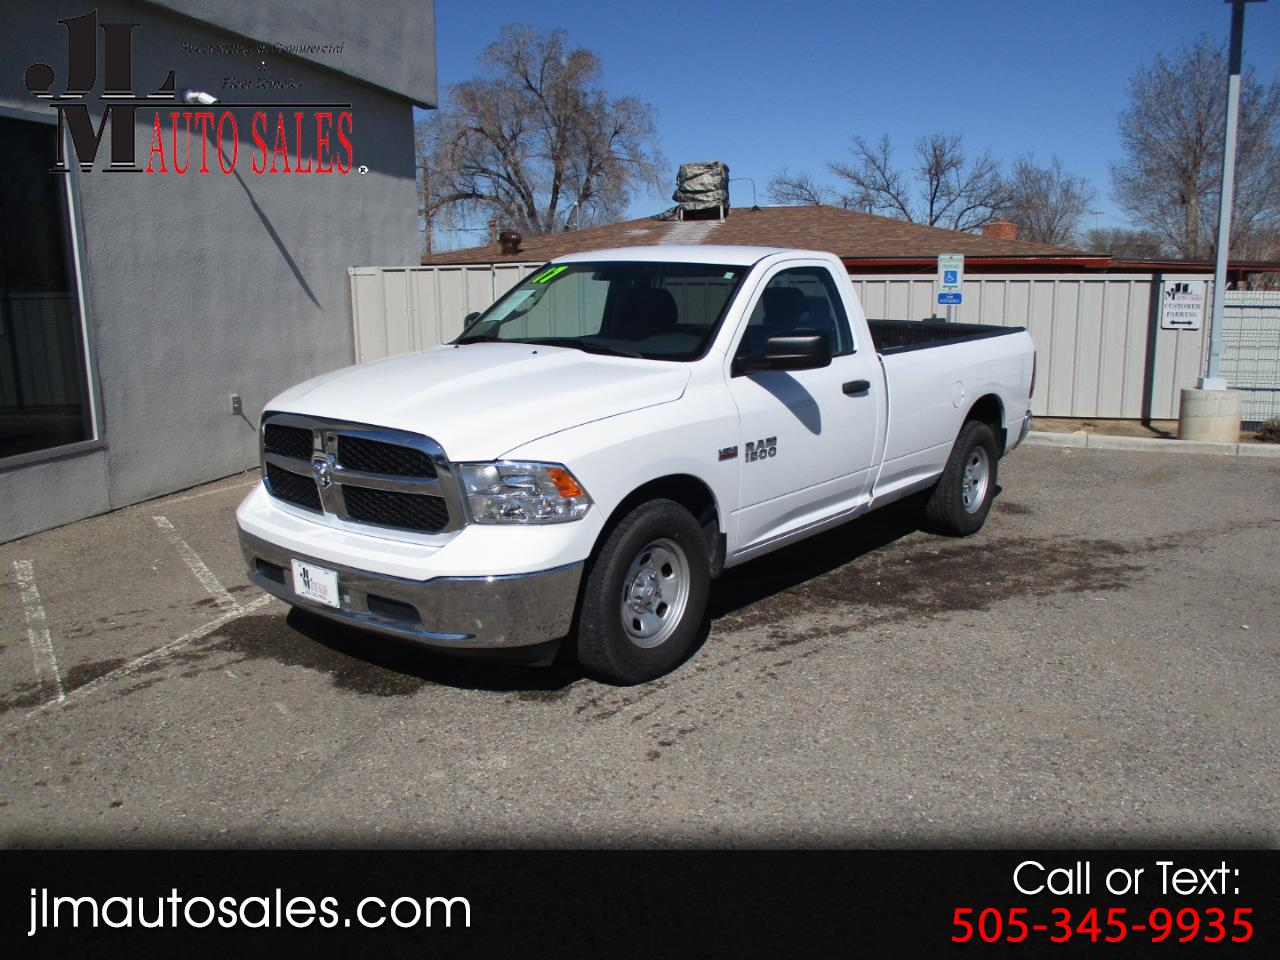 RAM 1500 Tradesman Regular Cab LWB 2WD 2017